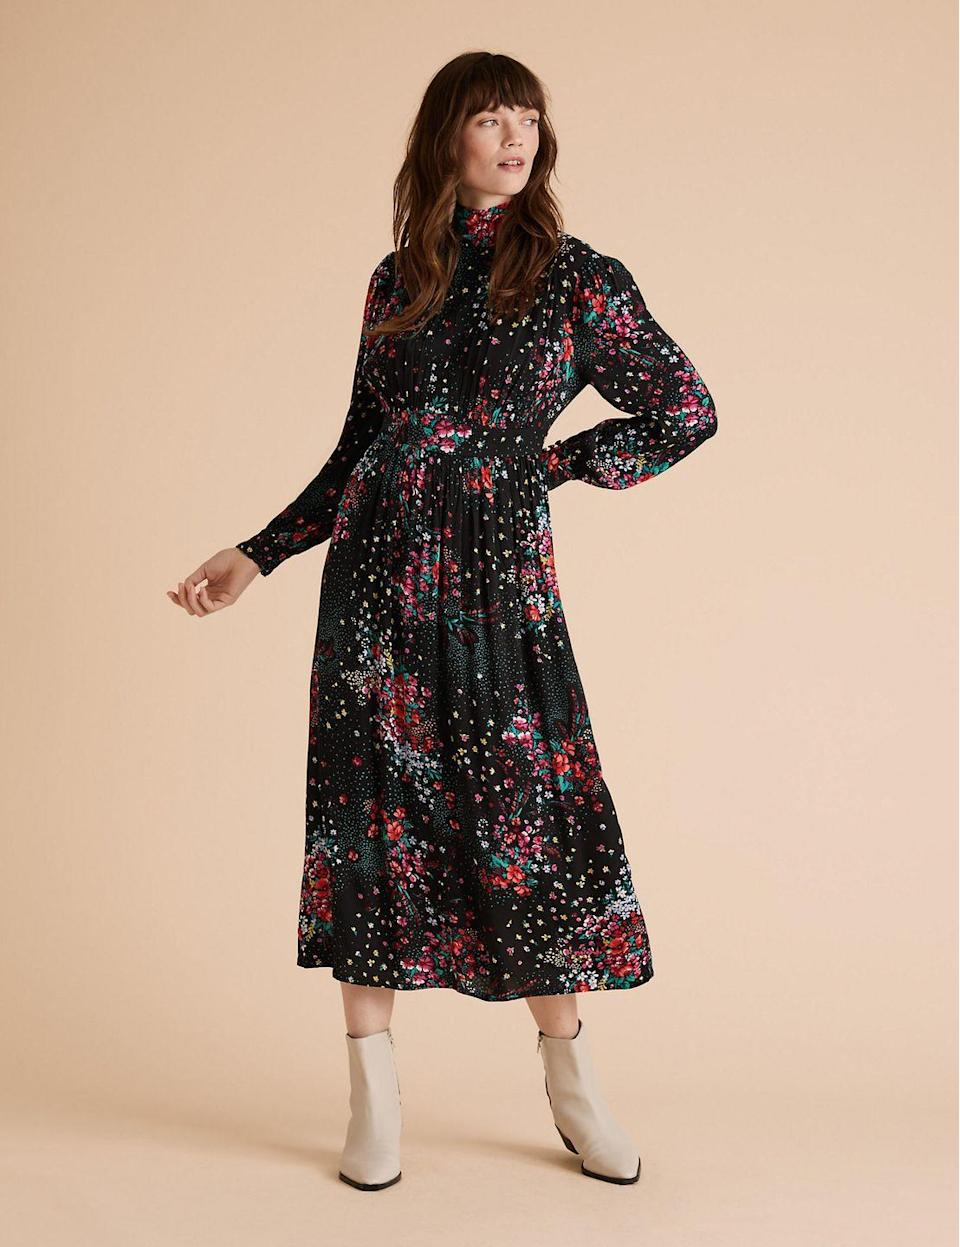 """<p><a class=""""link rapid-noclick-resp"""" href=""""https://go.redirectingat.com?id=127X1599956&url=https%3A%2F%2Fwww.marksandspencer.com%2Ffloral-high-neck-midaxi-waisted-dress%2Fp%2Fclp60474490&sref=https%3A%2F%2Fwww.redonline.co.uk%2Ffashion%2Fshopping%2Fg34625942%2Fmarks-and-spencer-womenswear-sale%2F"""" rel=""""nofollow noopener"""" target=""""_blank"""" data-ylk=""""slk:SHOP HERE"""">SHOP HERE</a> <strong>Was £55, Now £38.50 </strong></p><p>This Per Una design proves that floral prints and drapey dresses can work in the colder seasons too. Pair with tights and boots for a warm winter look. </p>"""